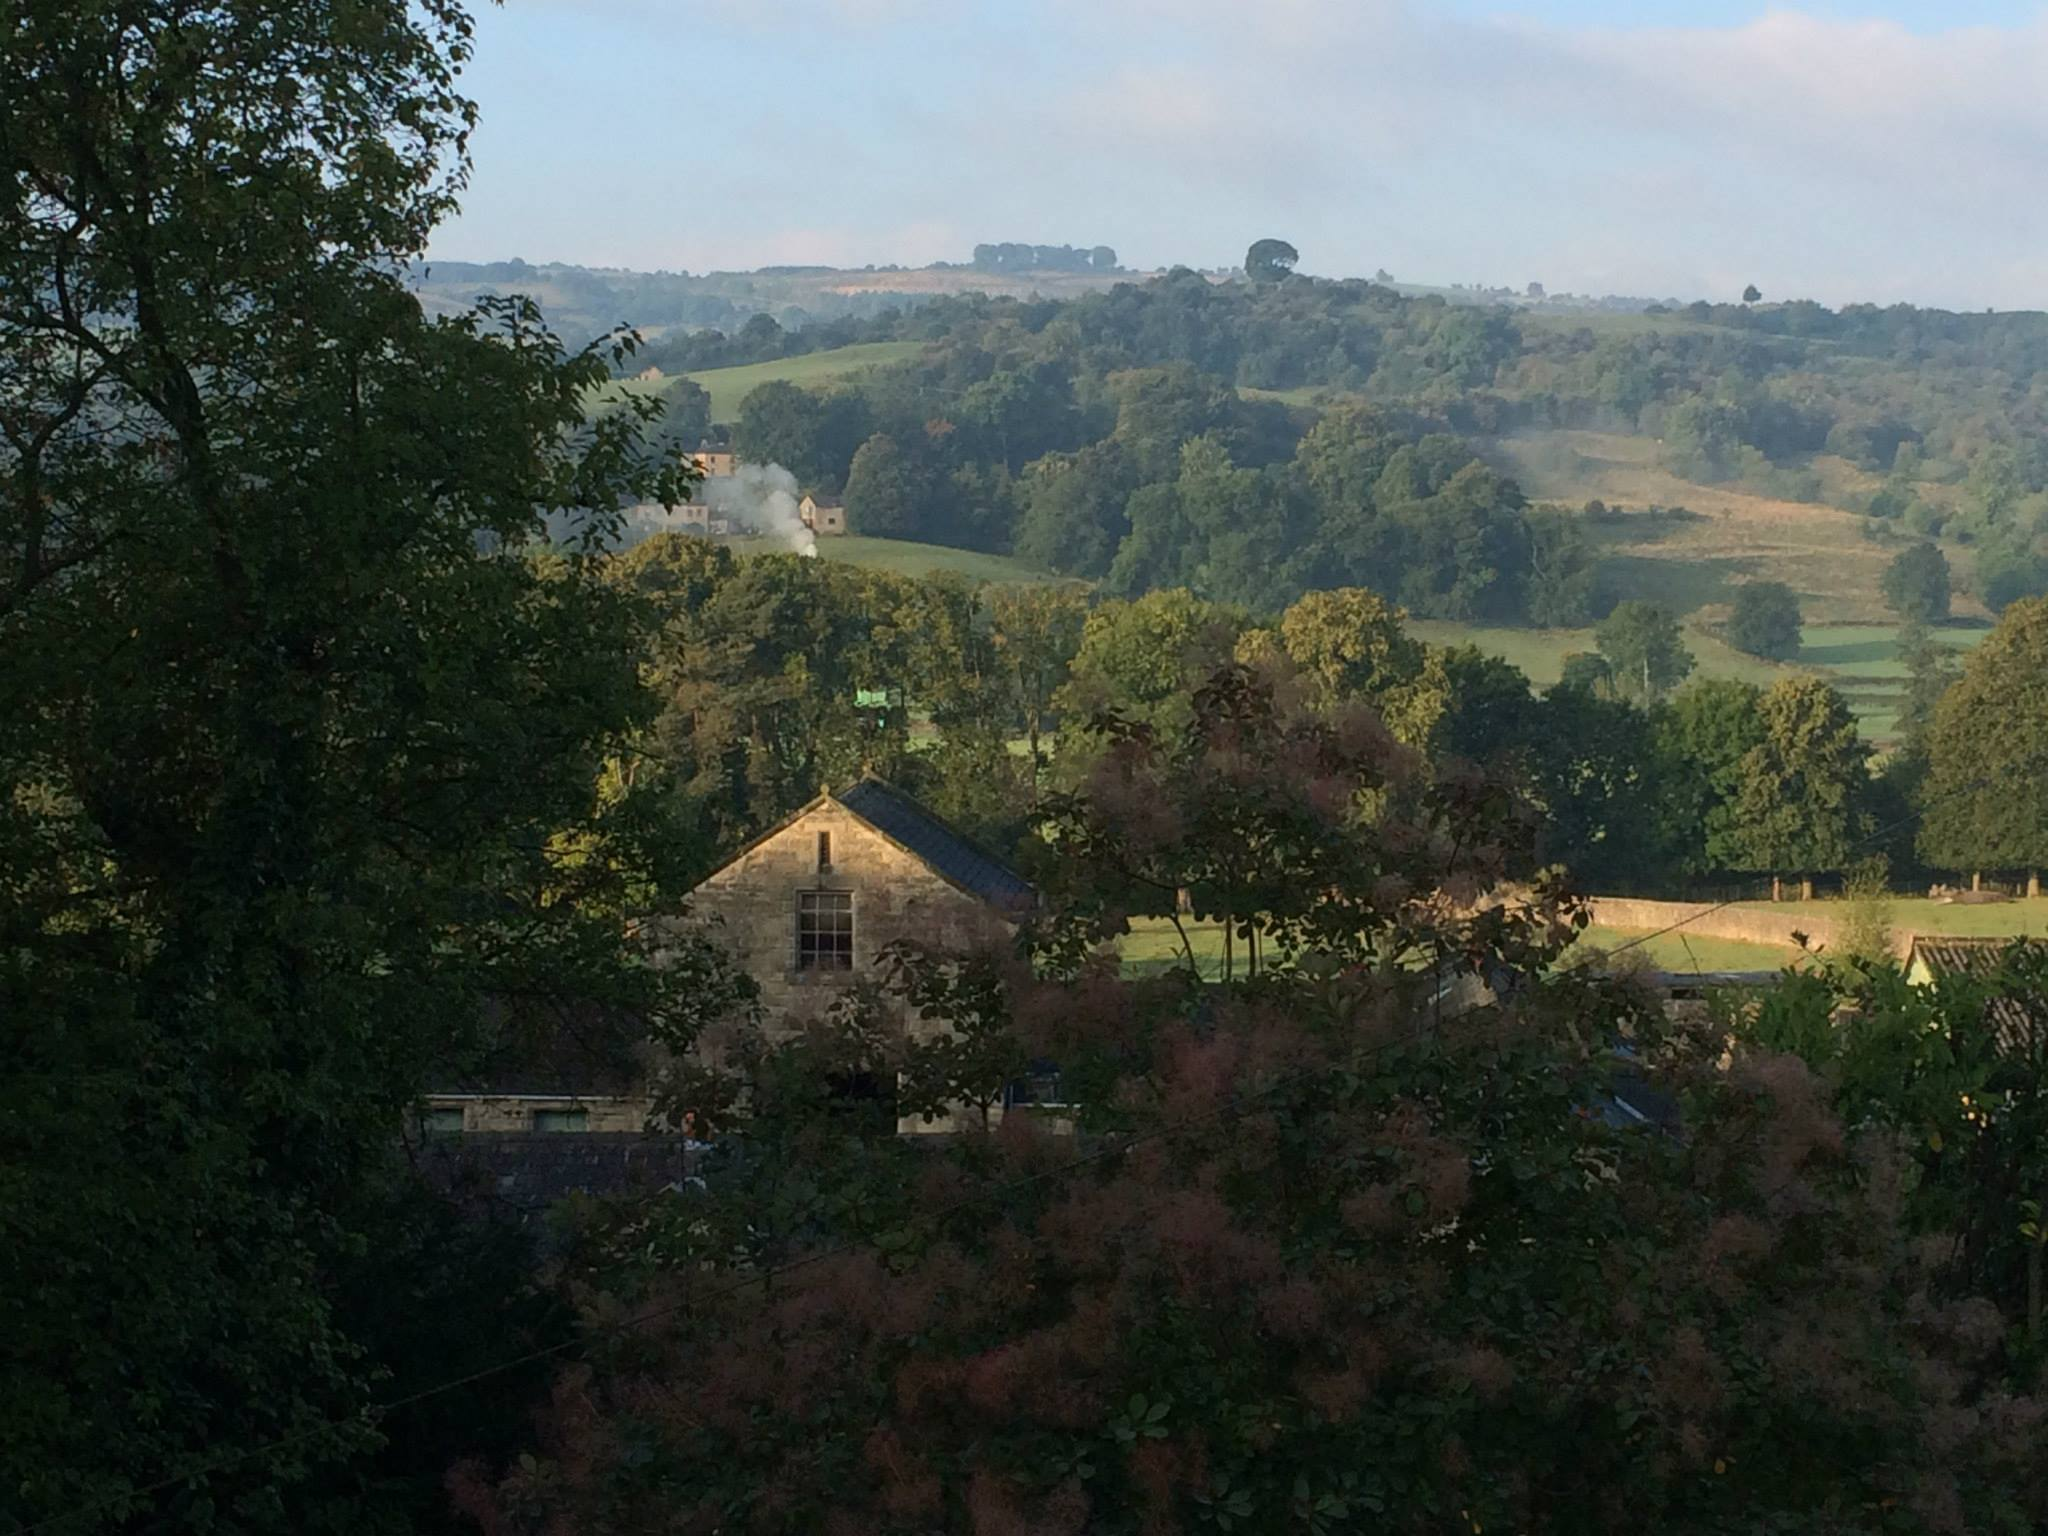 View from Dovedale bathroom